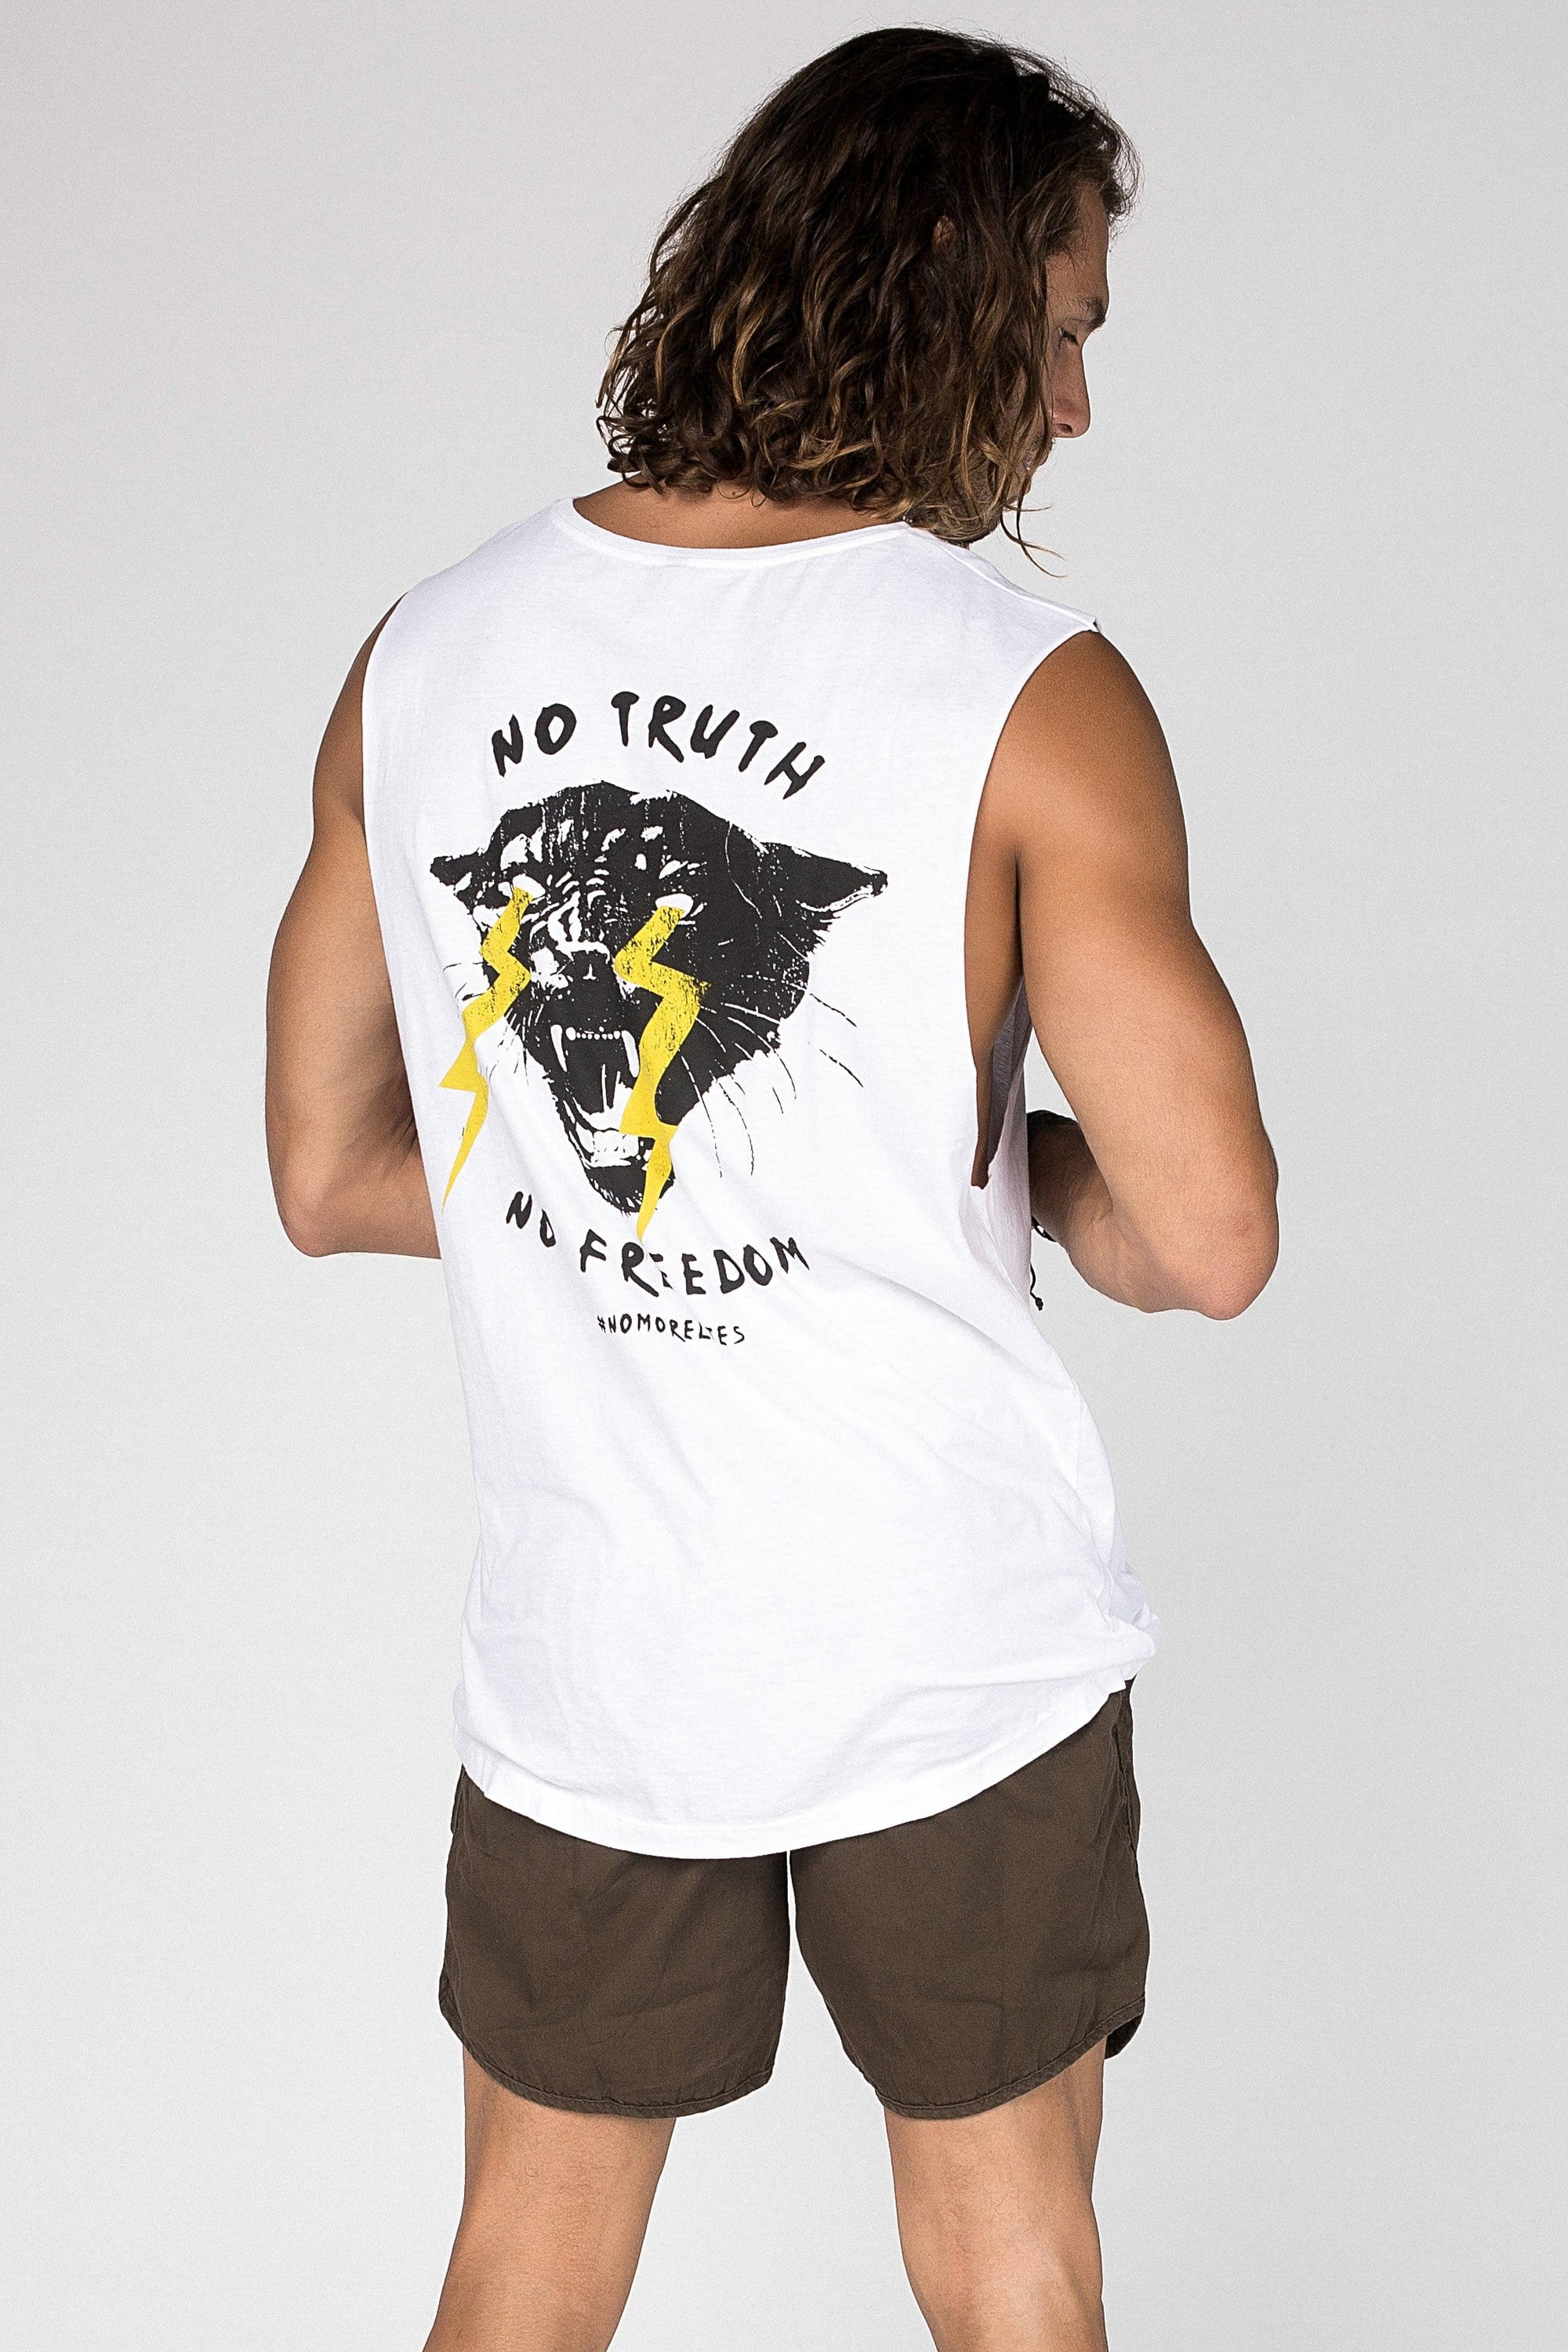 Sm No Truth No Freedom - Mens Muscle Tank - LOST IN PARADISE